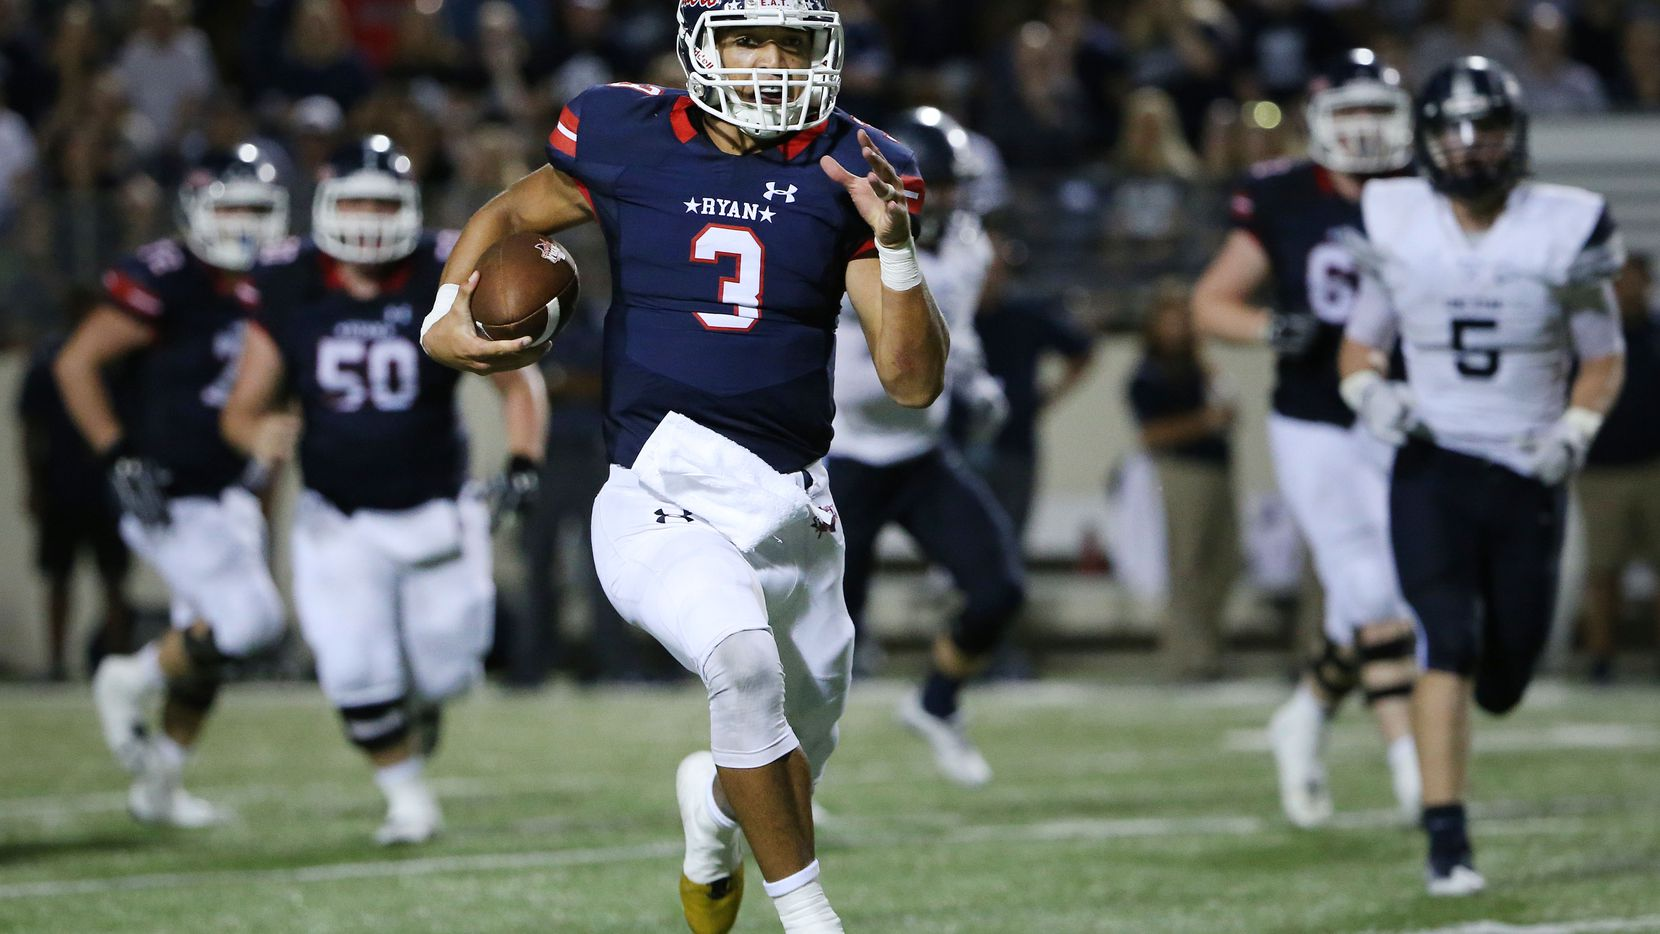 Denton Ryan quarterback Spencer Sanders (3) rushes with the ball in the third quarter during a high school football game between Frisco Lone Star and Denton Ryan at C. H. Collins Athletic Complex in Denton, Texas Friday September 16, 2016. Denton Ryan beat Frisco Lone Star 51-34. (Andy Jacobsohn/The Dallas Morning News)